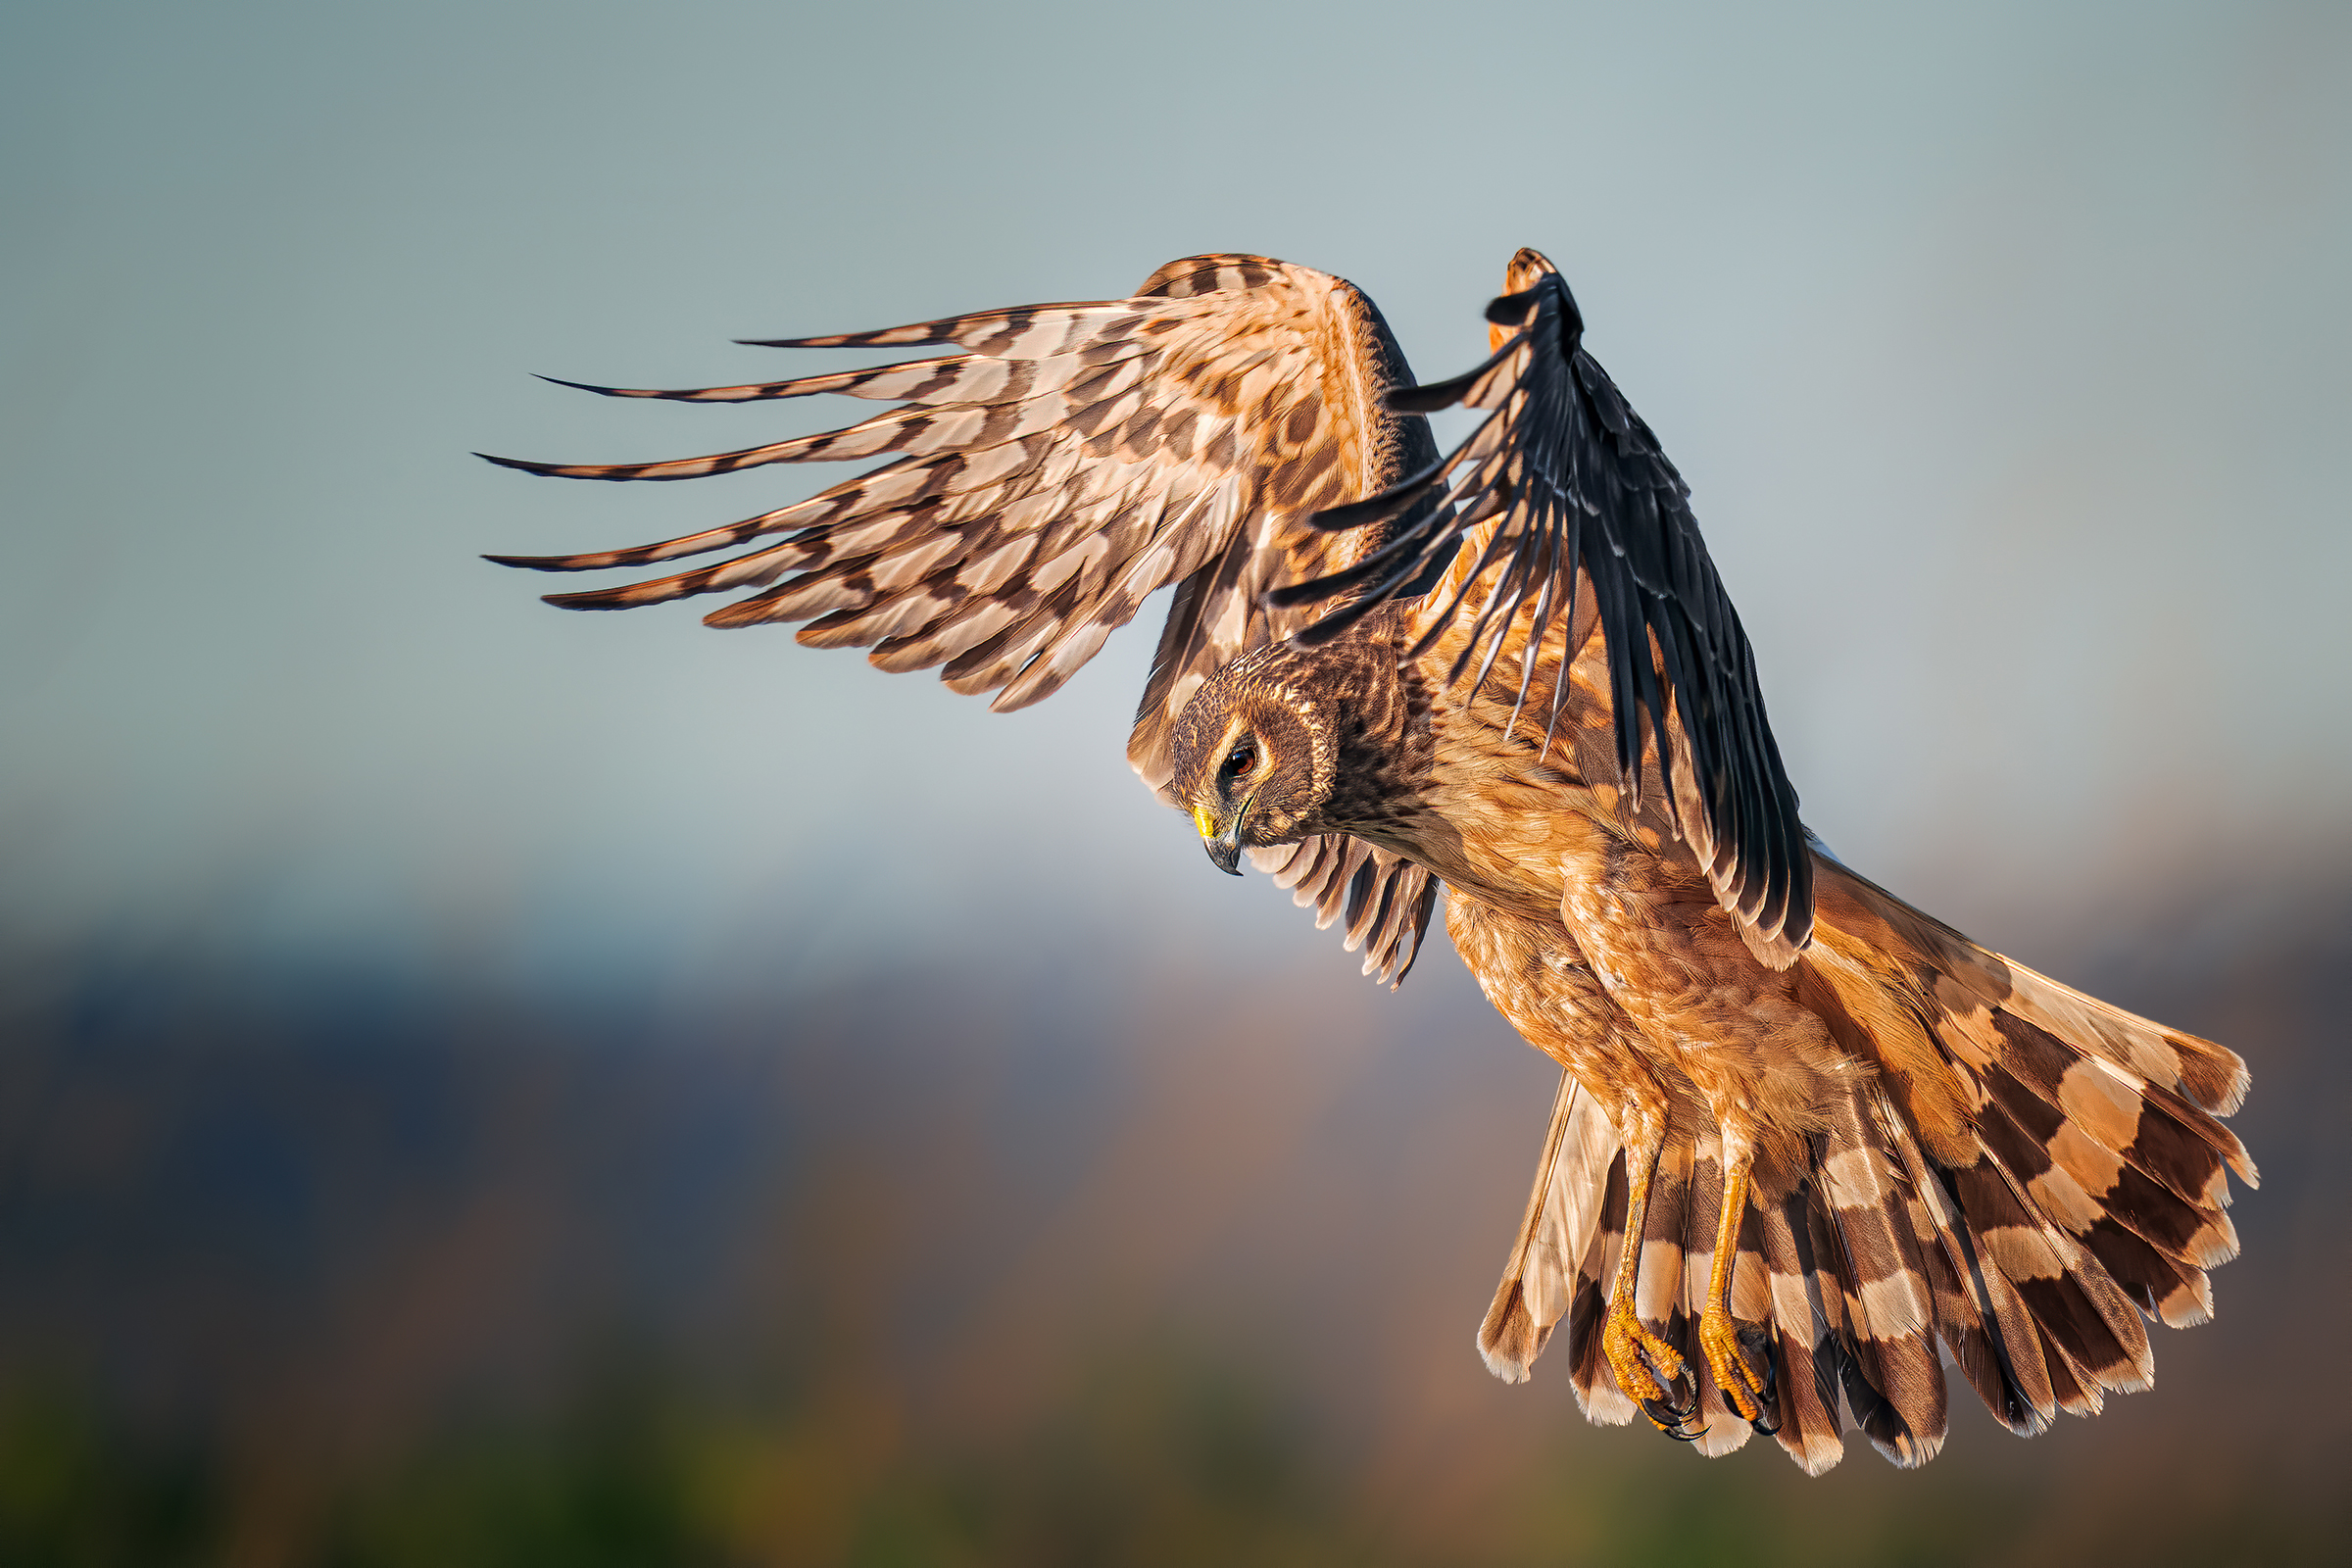 A female Northern Harrier flies over a wetland, her broad wings raised over her head. Her long tail striped with white and brown spreads out like a fan, her round face looking down.